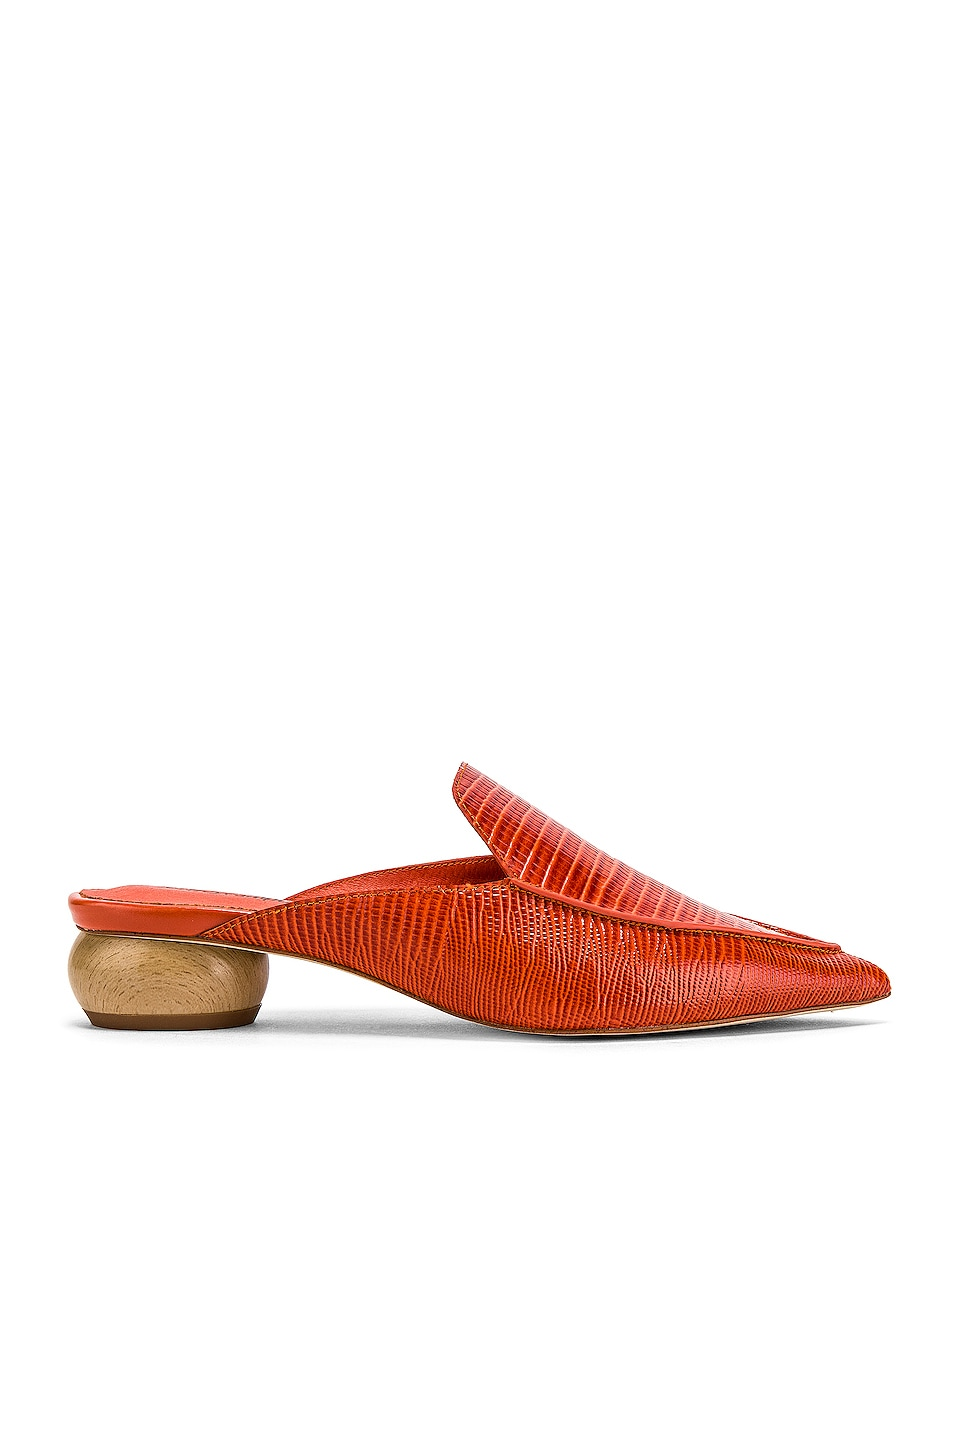 Jeffrey Campbell Vionit Mule in Orange Lizard